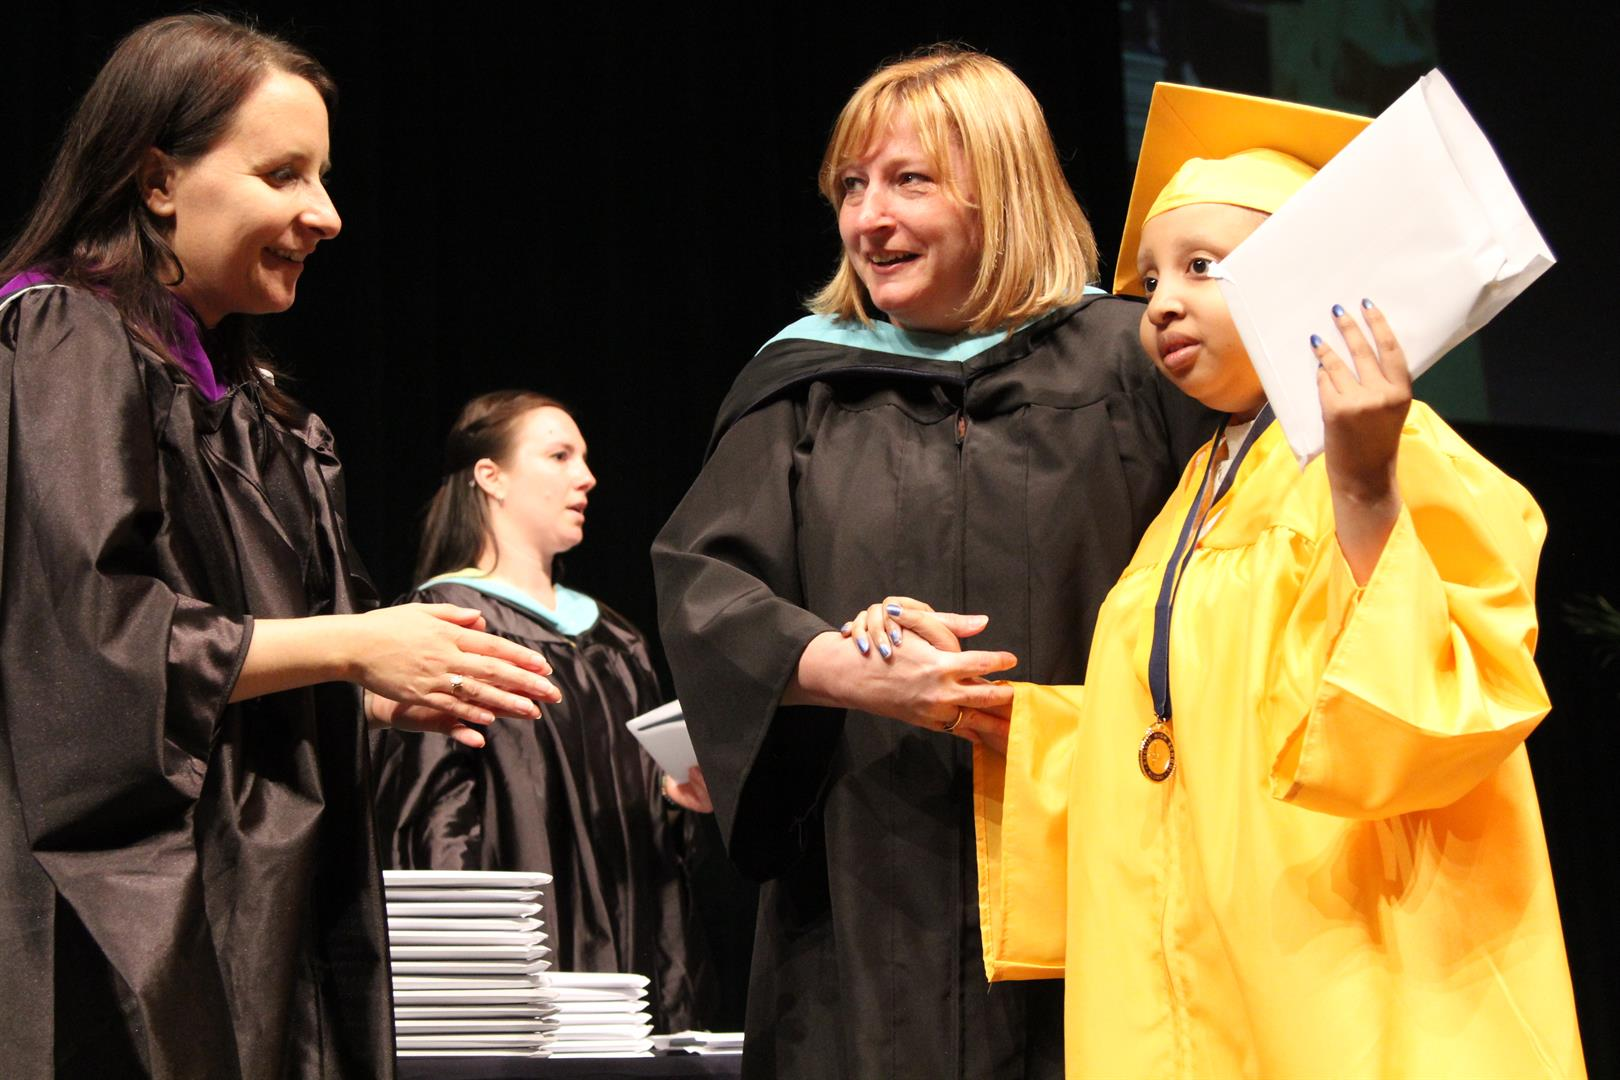 Kathy DeAngelis Board Member giving student a diploma